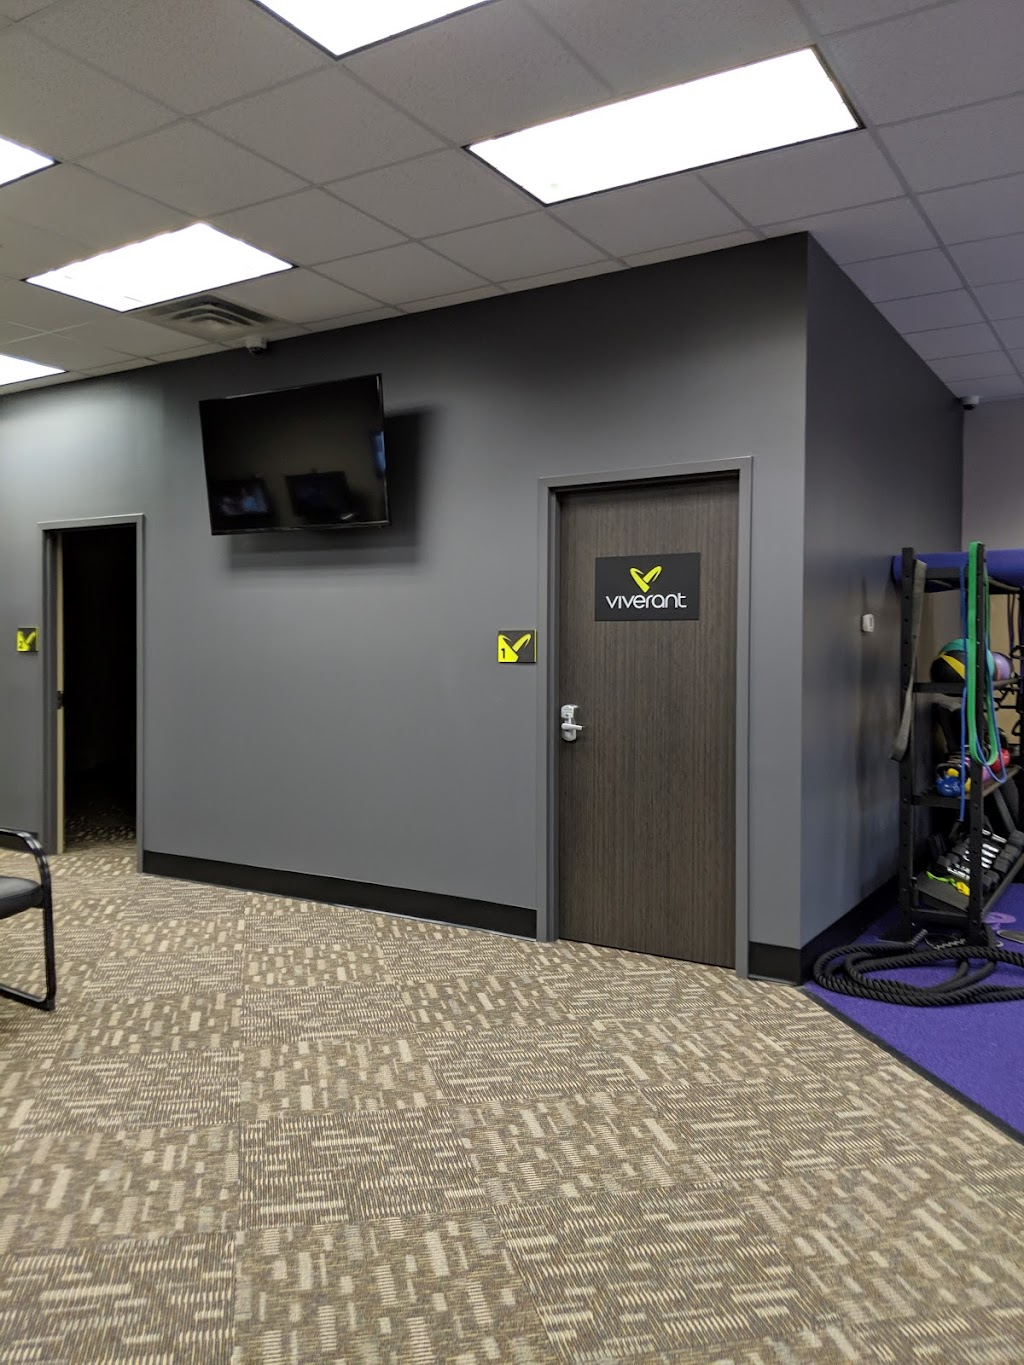 Viverant Physical Therapy - health    Photo 3 of 4   Address: Inside Anytime Fitness Club, 20700 Chippendale Ave W, Farmington, MN 55024, USA   Phone: (952) 835-4512